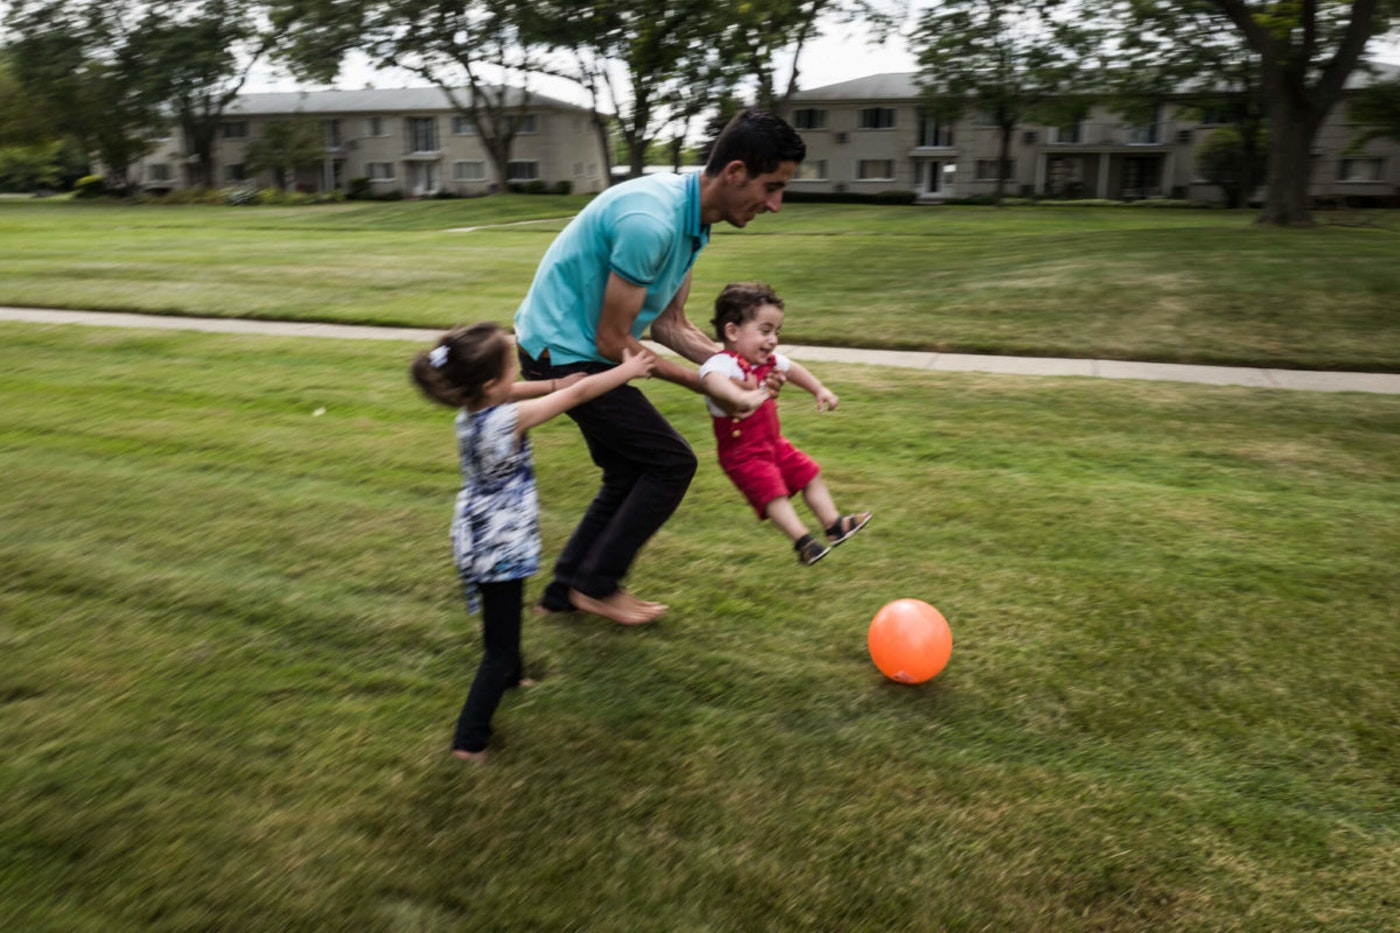 Nedal Al Hayek plays with his son, Taym, and daughter, Layal, outside their new home on July 28, 2015 in Bloomfield Hills, Michigan. The family, including Nedals wife, Raeda, fled Syria after he was beaten and tortured by forces loyal to Bashar al-Assad. Nedal says he still worries for the safety of his extended family in Syria. Since the war started the United States has resettled under 1,500 refugees, despite over 12,000 applications. This fall, U.S. President Barack Obama announced that least 10,000 displaced Syrians will be allowed into the United states over the next year. This announcement was followed up by U.S. Secretary of State John Kerry announcing the United States would accept 85,000 refugees from around the world next year and that total would rise to 100,000 in 2017.